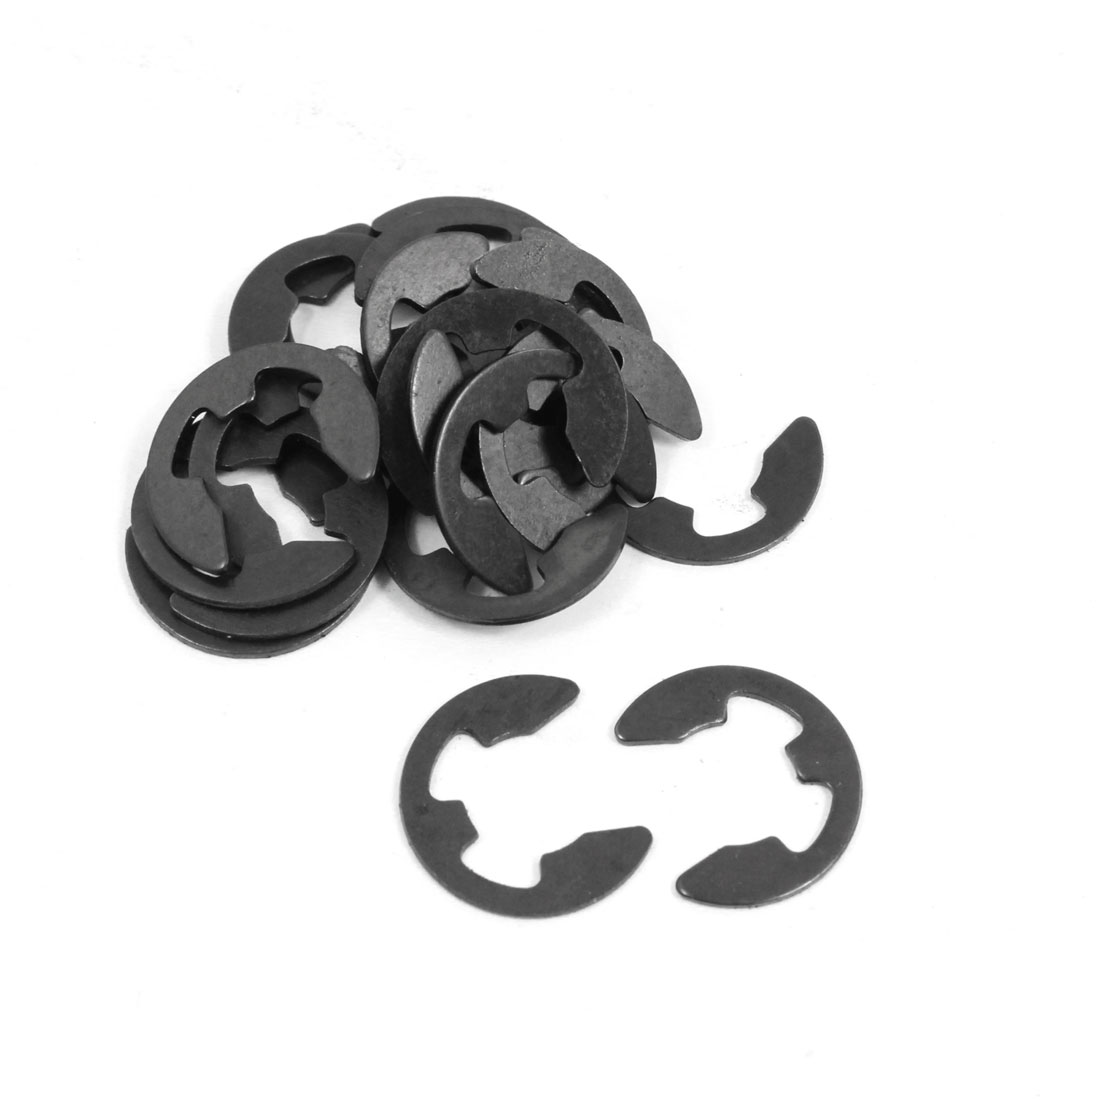 20 Pcs Black Metal 10mm Shaft Rod Lock E-Clip Clamp Washer